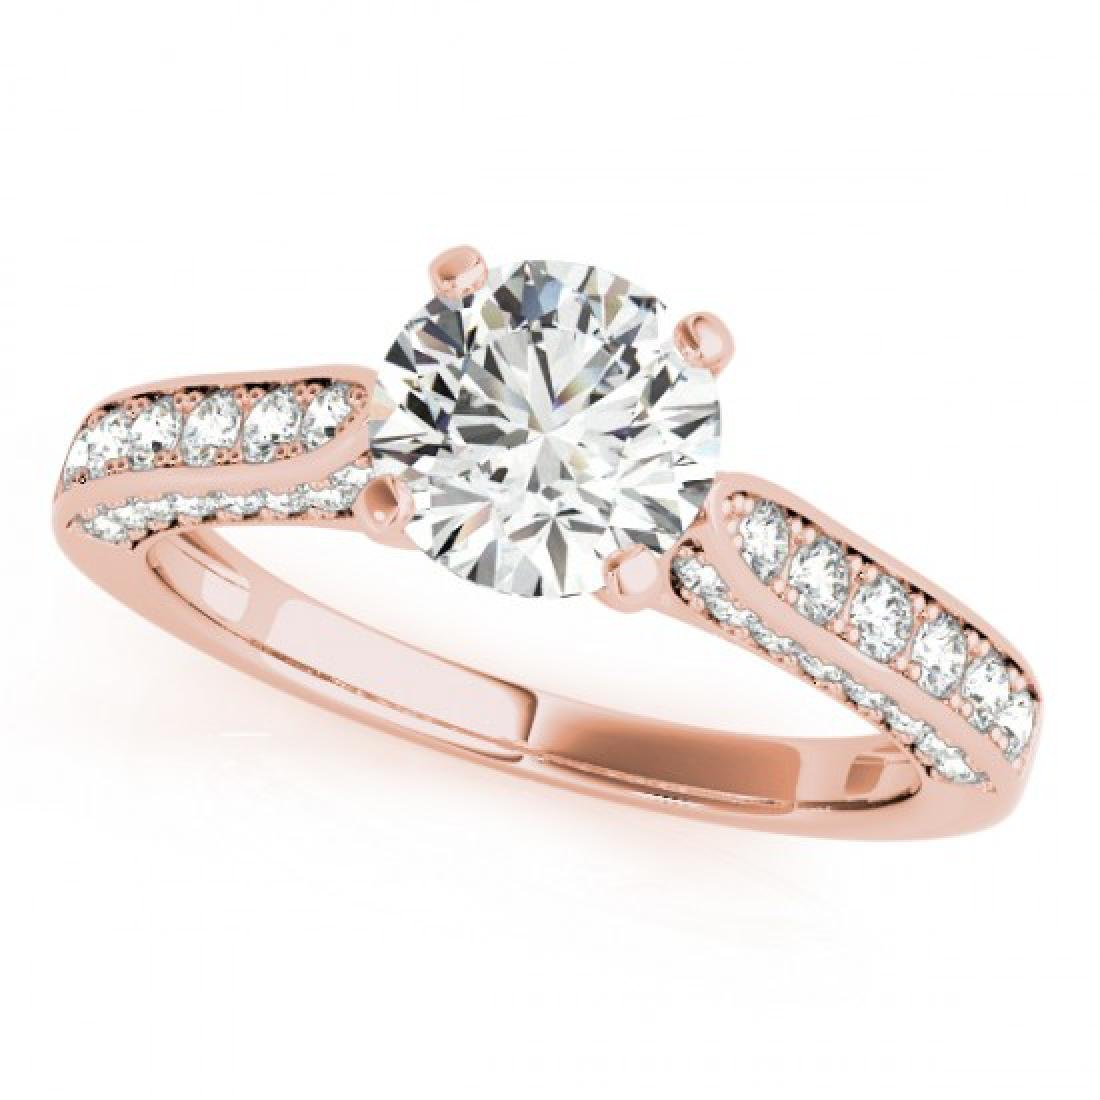 1.6 CTW Certified VS/SI Diamond Solitaire Ring 14K Rose